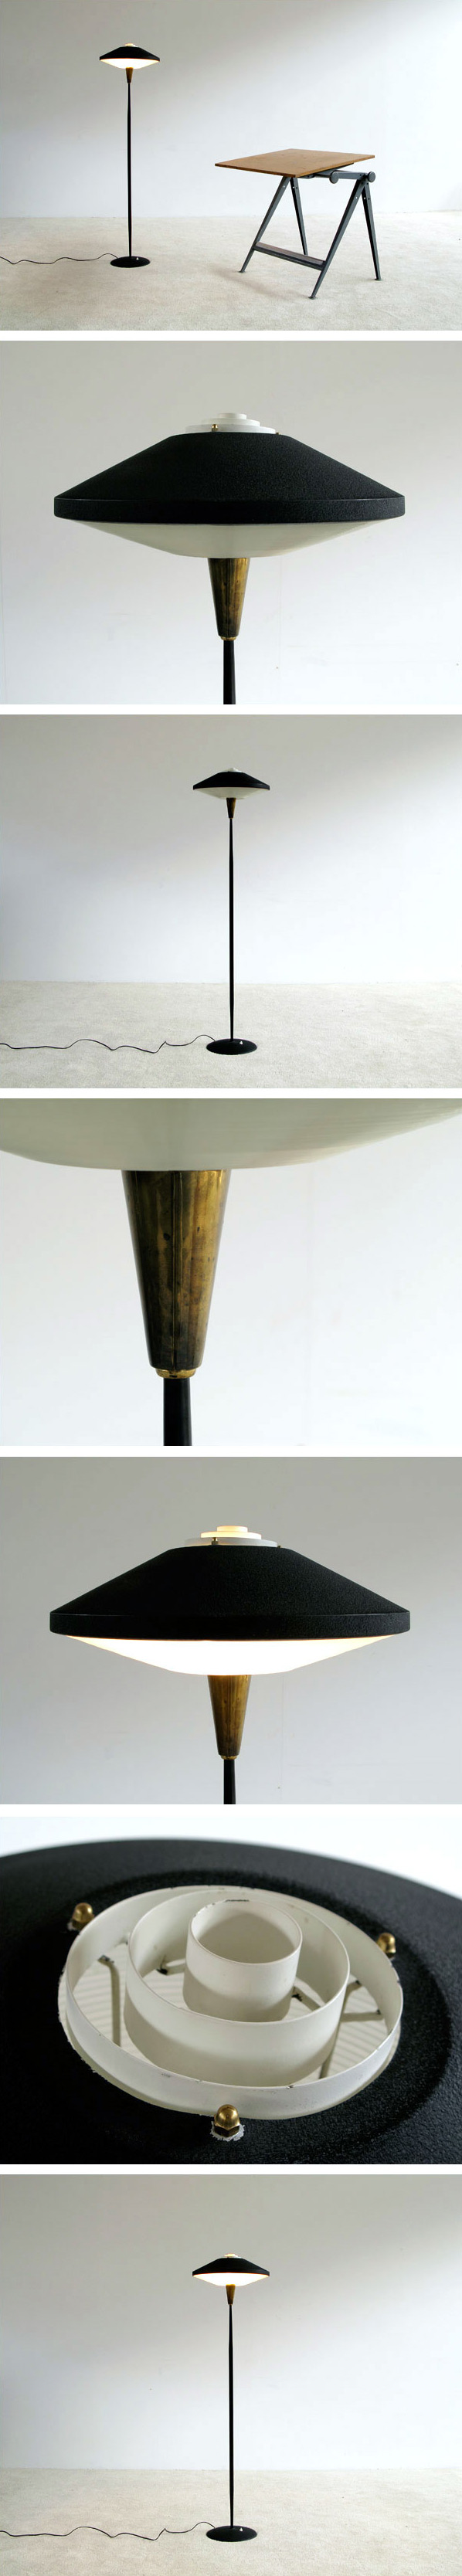 Floor lamp inspired by UFO craze 1950 Large